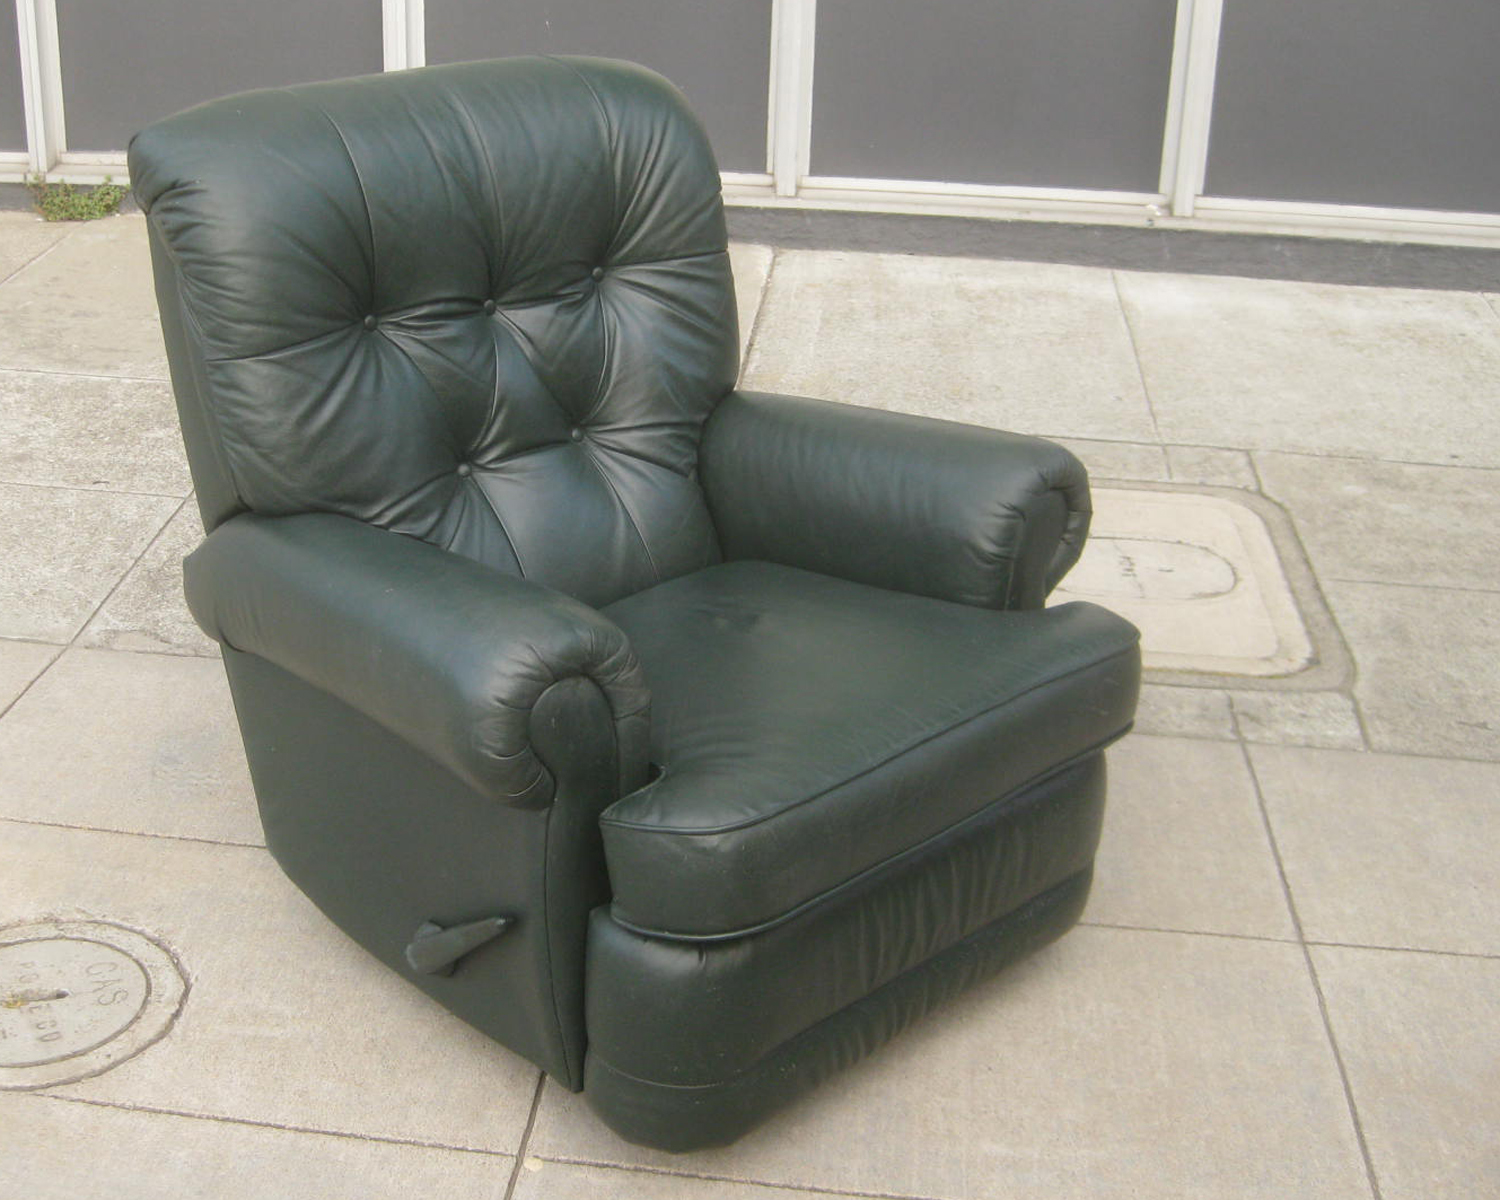 pop up recliner chairs white side uhuru furniture & collectibles: sold - forest green leather rocking $125